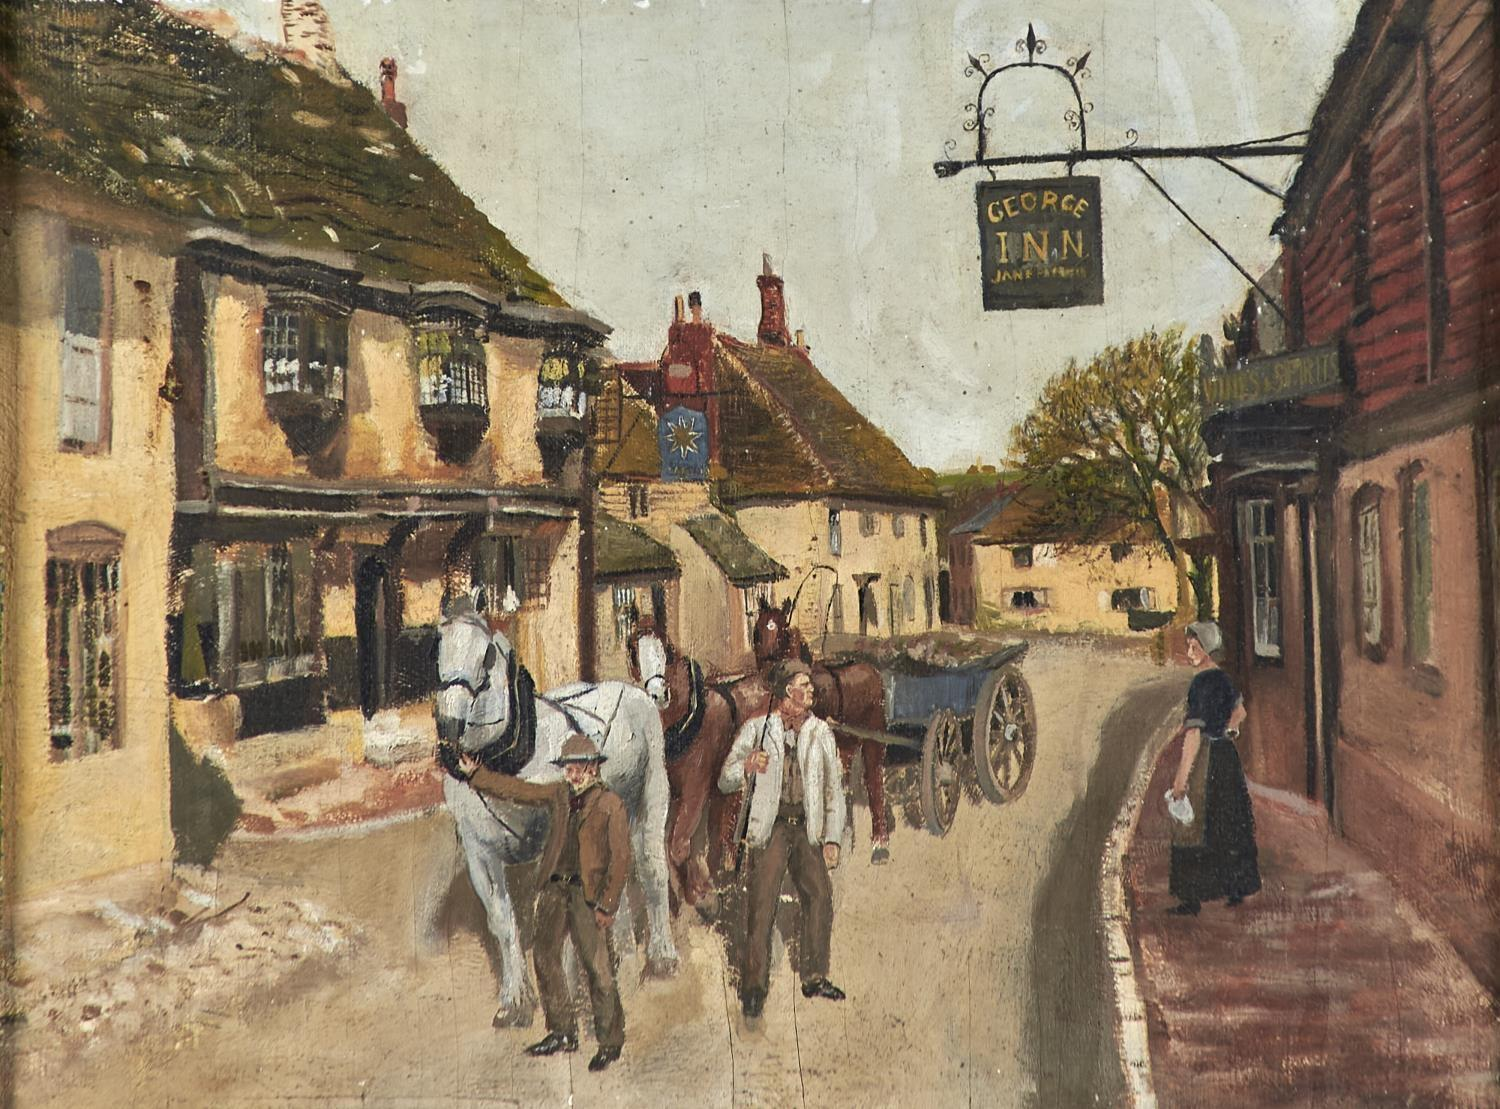 ENGLISH NAIVE ARTIST, EARLY 20TH CENTURY - YOUTH AND AGE, OIL ON BOARD, 32.5 X 43.5CM Slight